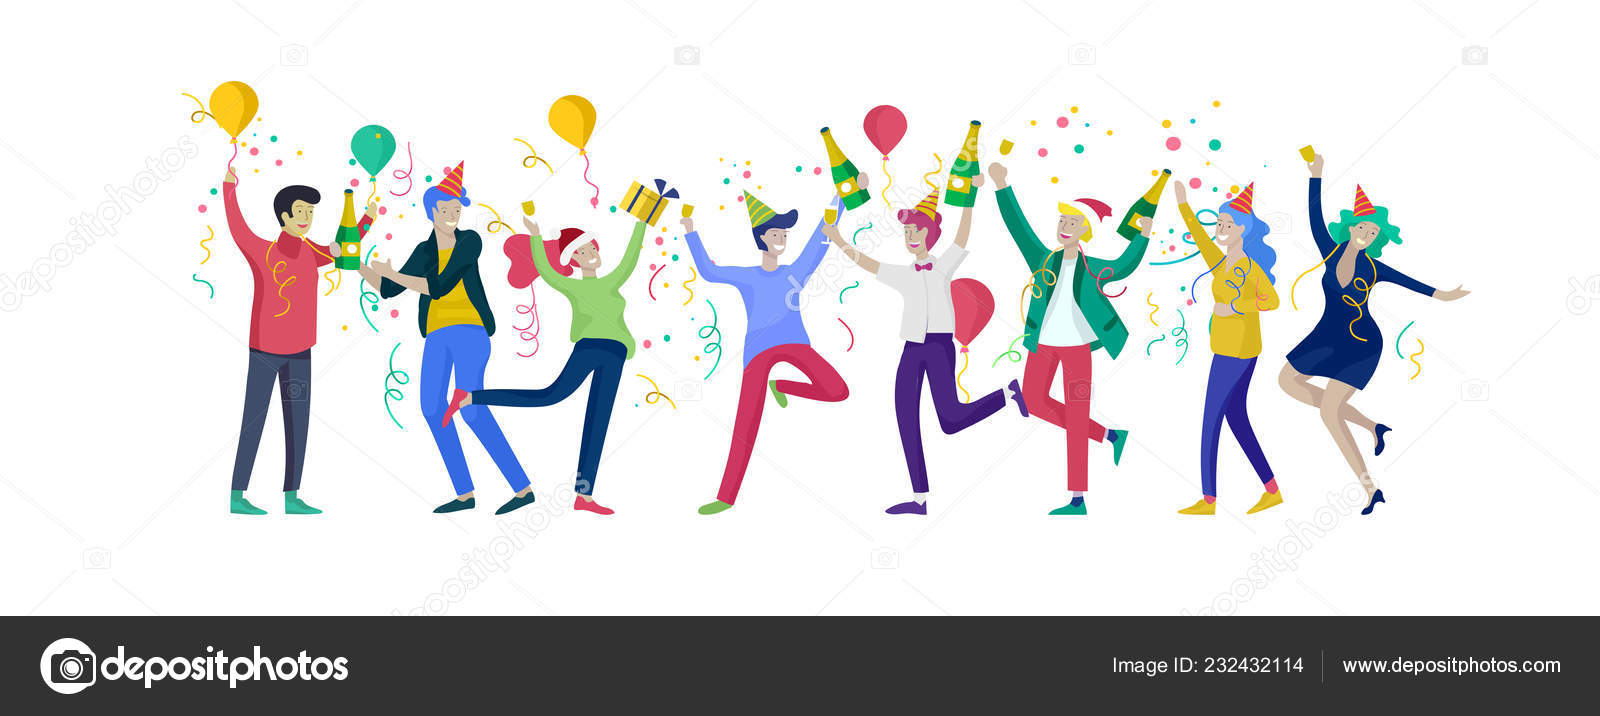 Christmas Party Images Cartoon.Happy Christmas Day Celebrating Together Happy Group Of